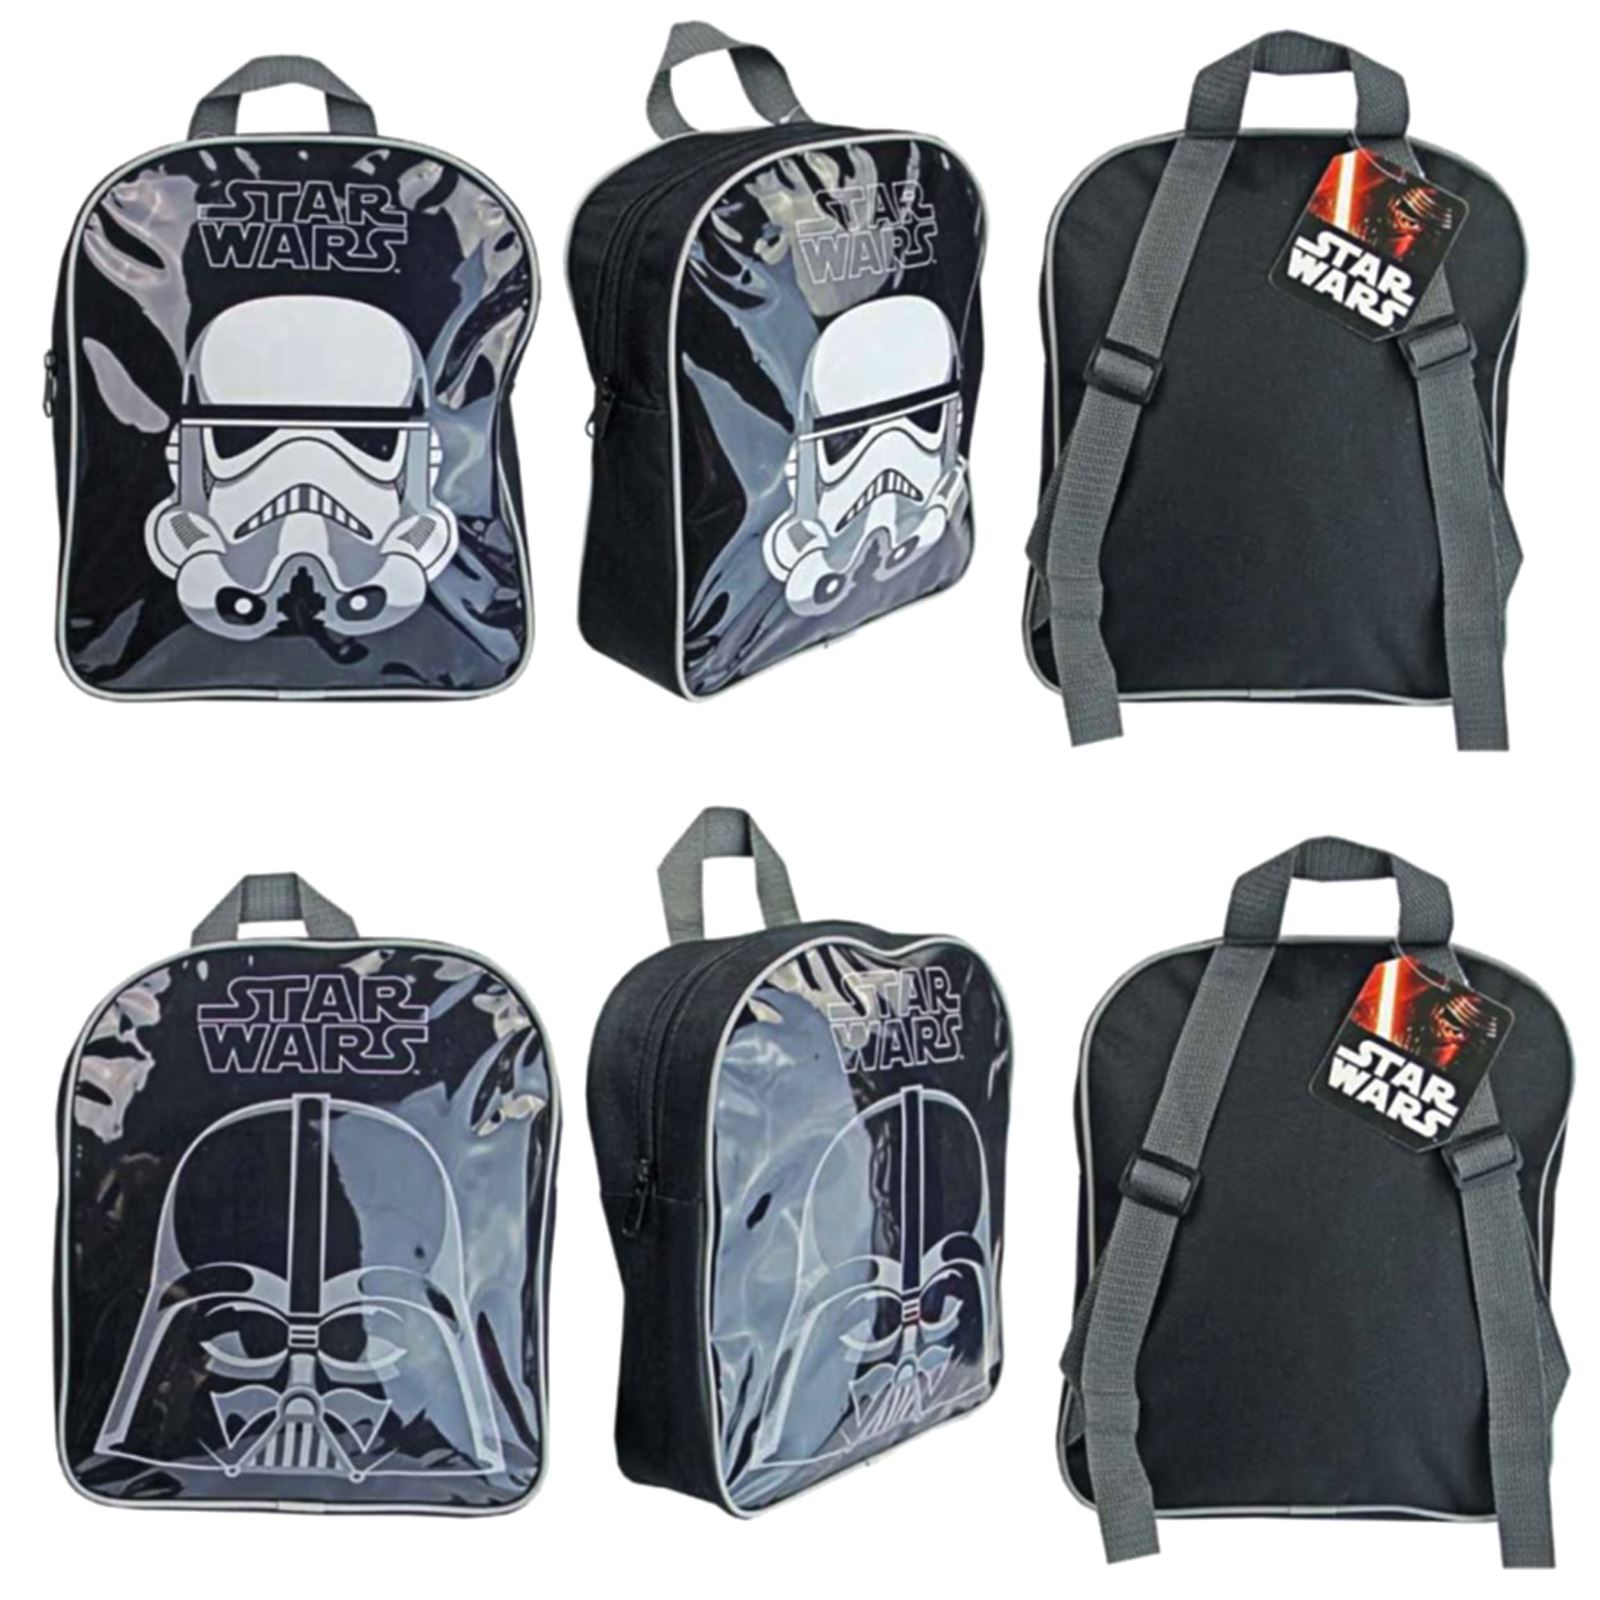 Star Wars Darth Vader /& Storm Trooper Backpack Children School Bags Kids New